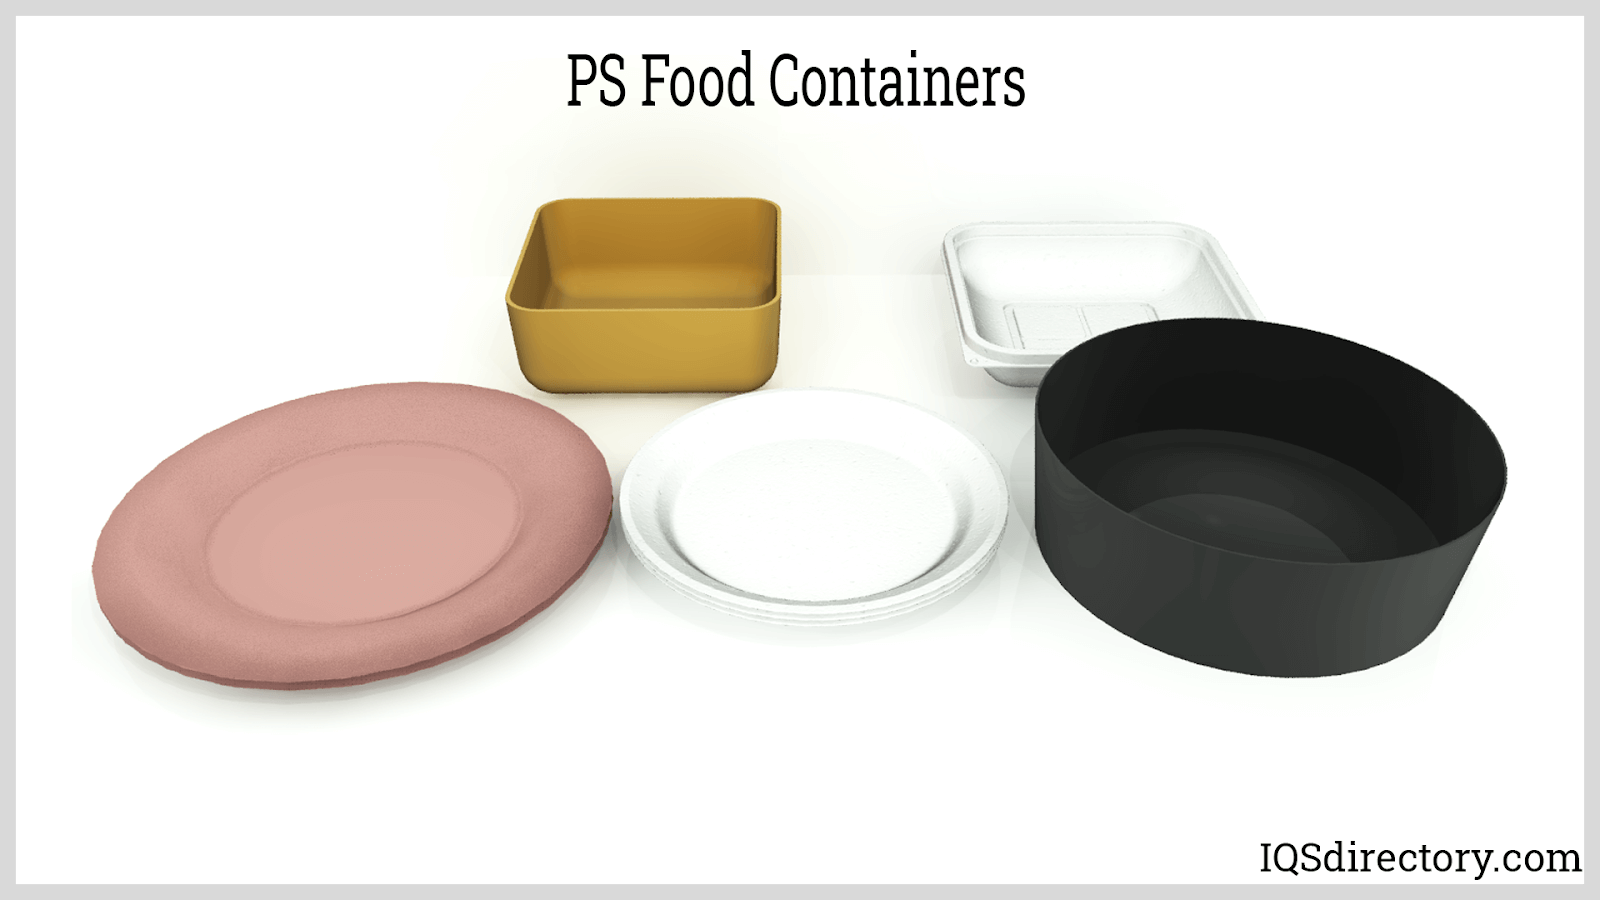 PS Food Containers